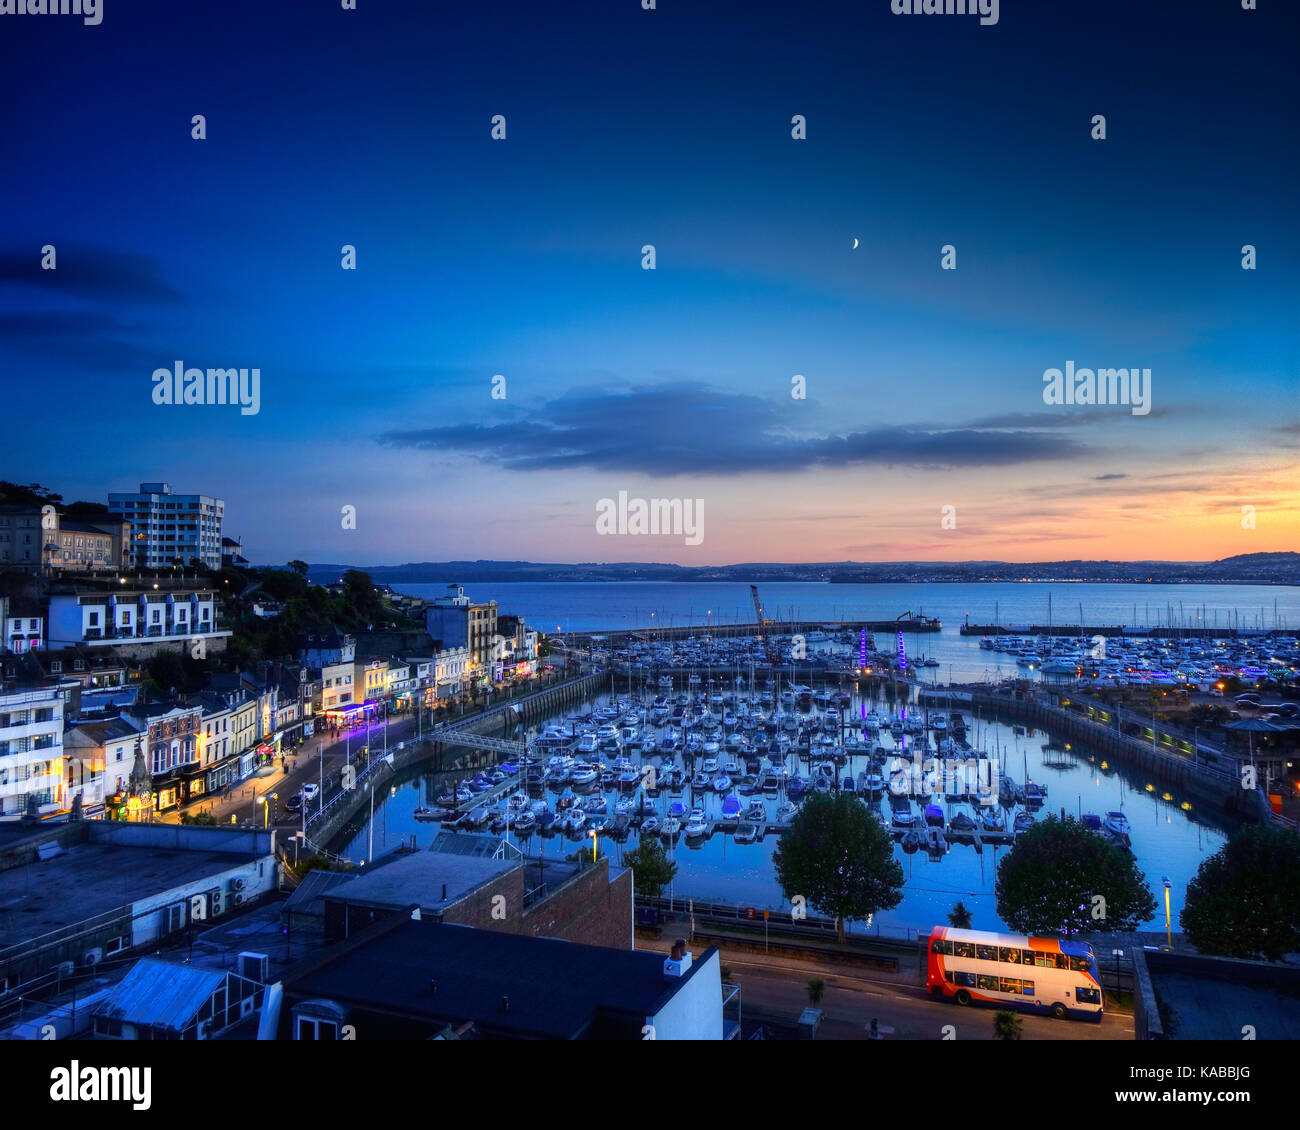 GB - DEVON: Torquay Harbour at night (HDR image) - Stock Image